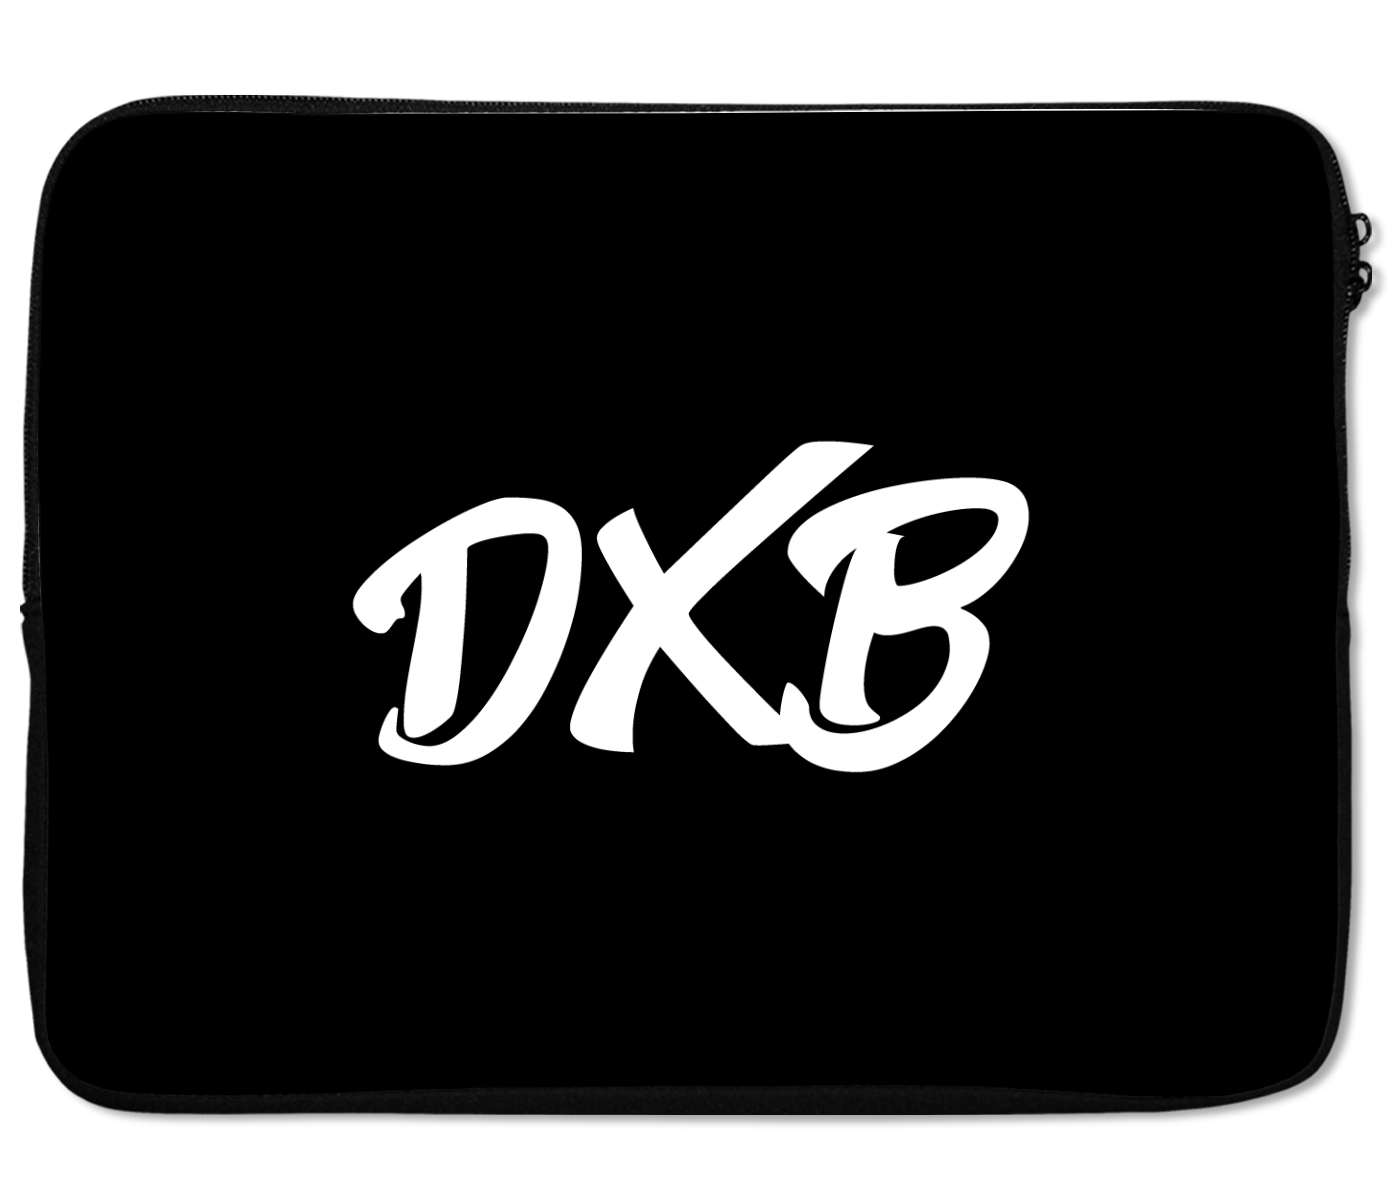 Laptops Tablet Sleeves Dxb Dubai Premium Quality Neoprene Laptop Protection